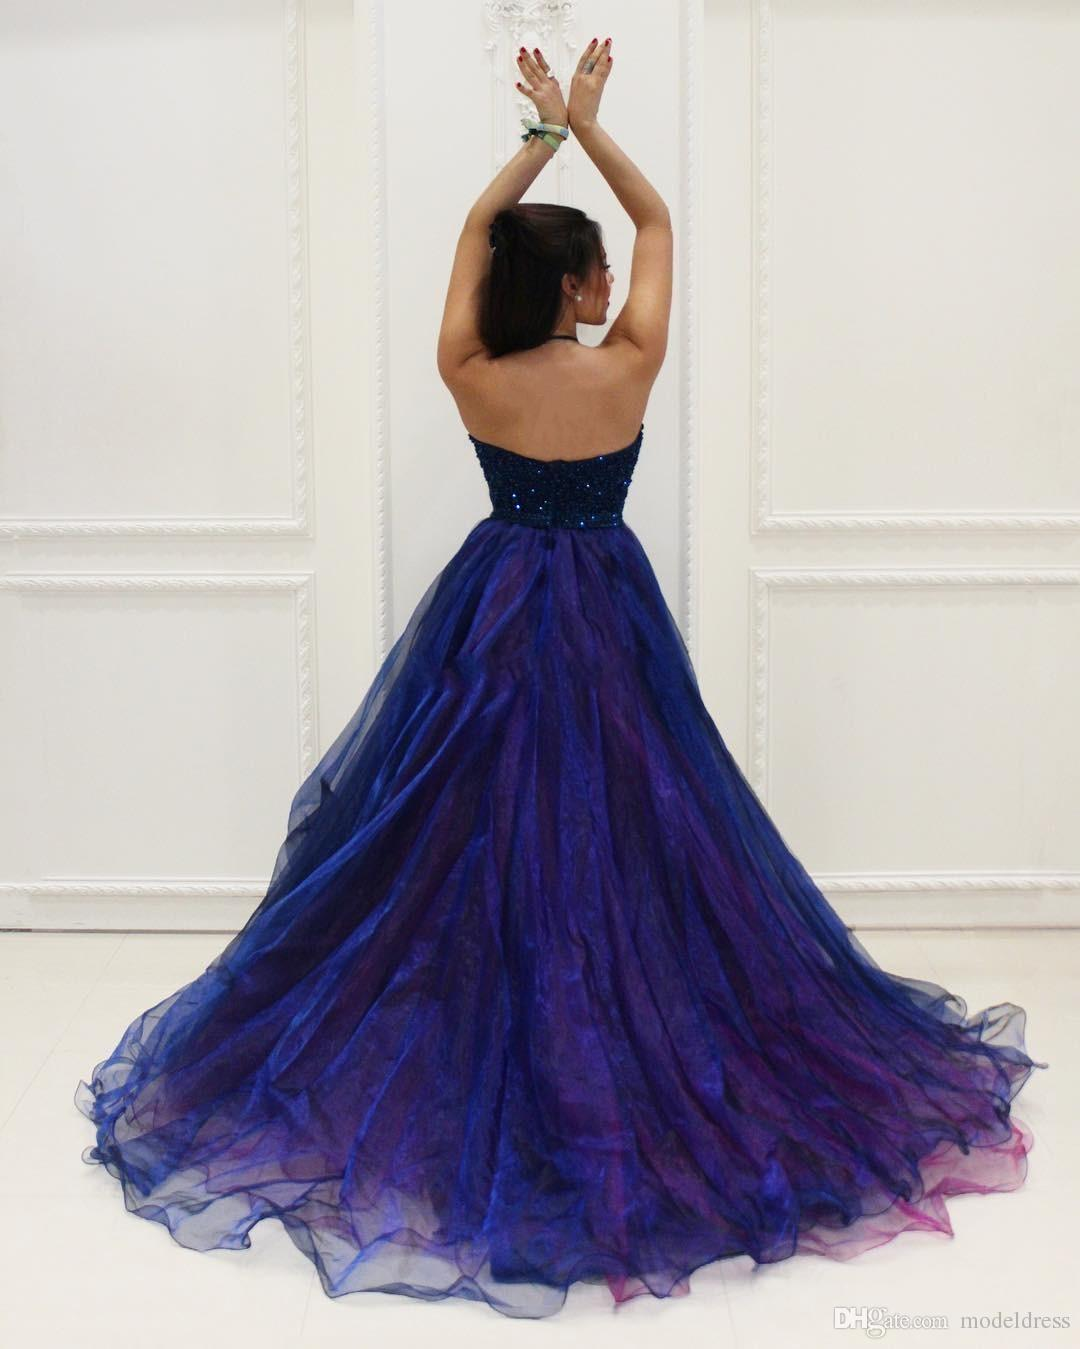 2018 Modest High Low Prom Dresses Halter Backless Major Beading Tired Skirt Organza Royal Blue Evening Party Graduation Gowns Customized